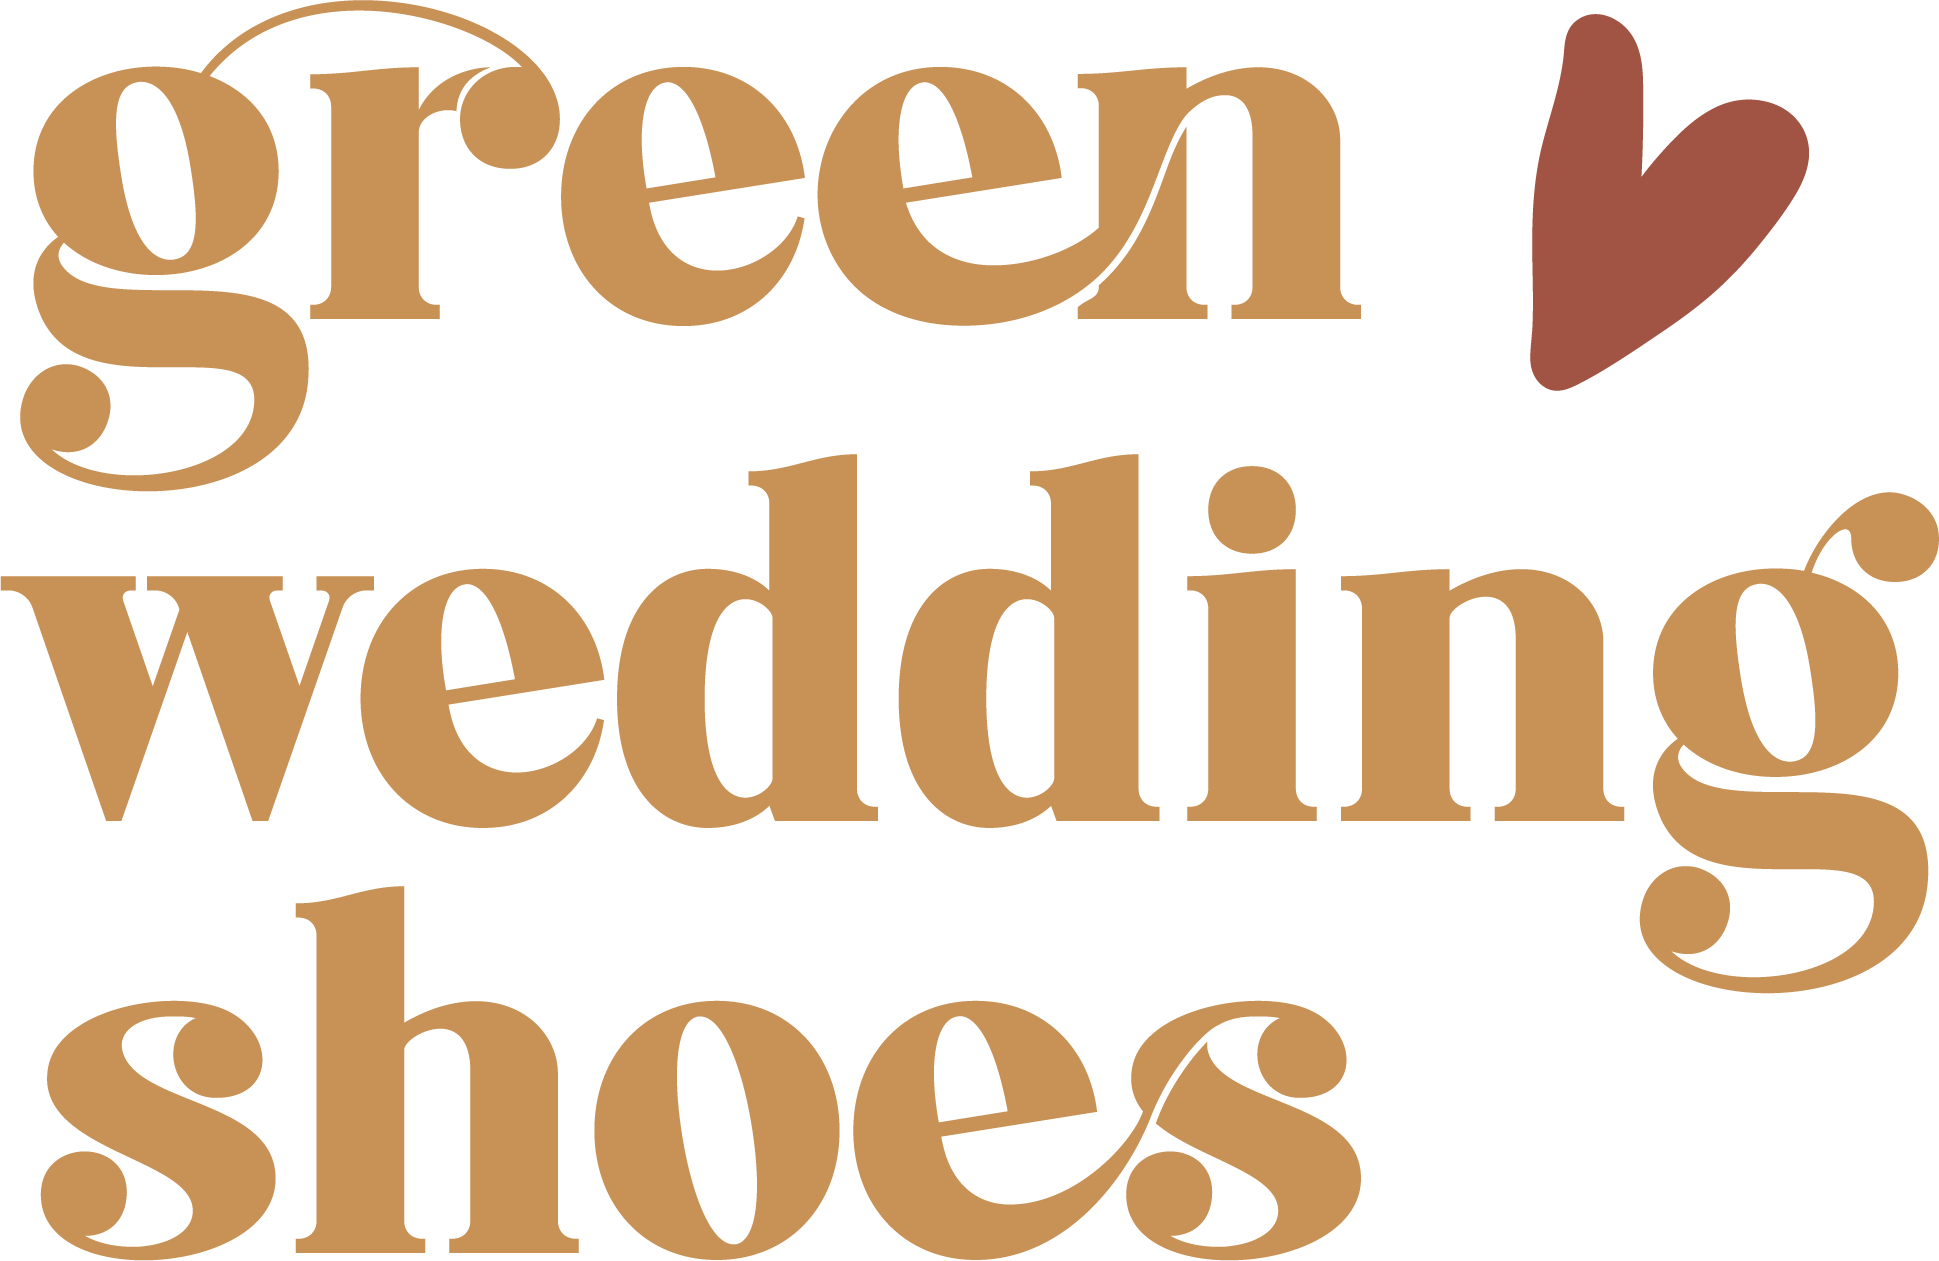 Home Green Wedding Shoes